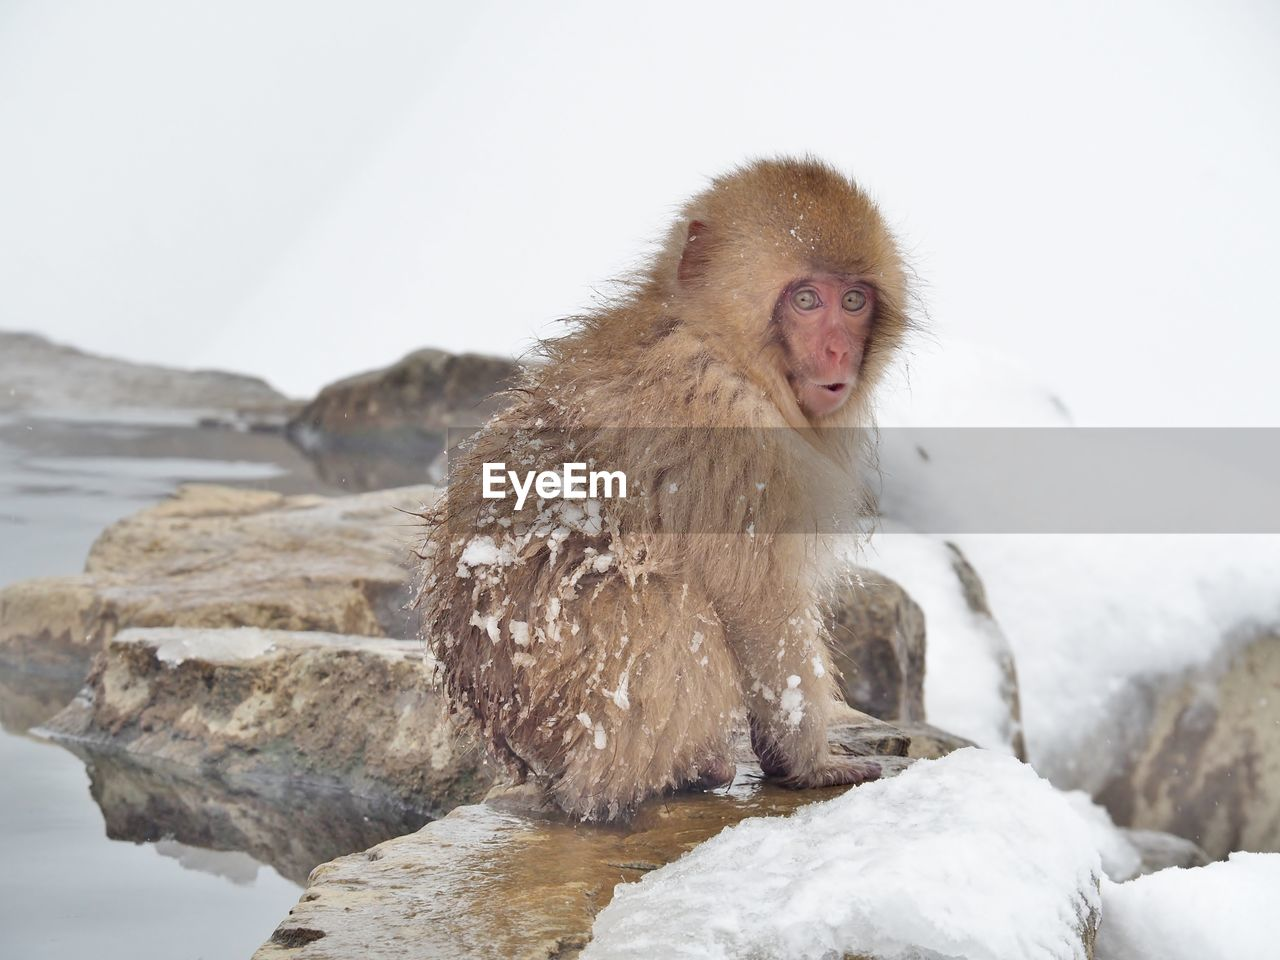 winter, cold temperature, snow, rock - object, animal themes, japanese macaque, animals in the wild, one animal, monkey, mammal, water, nature, outdoors, day, animal wildlife, no people, beauty in nature, hot spring